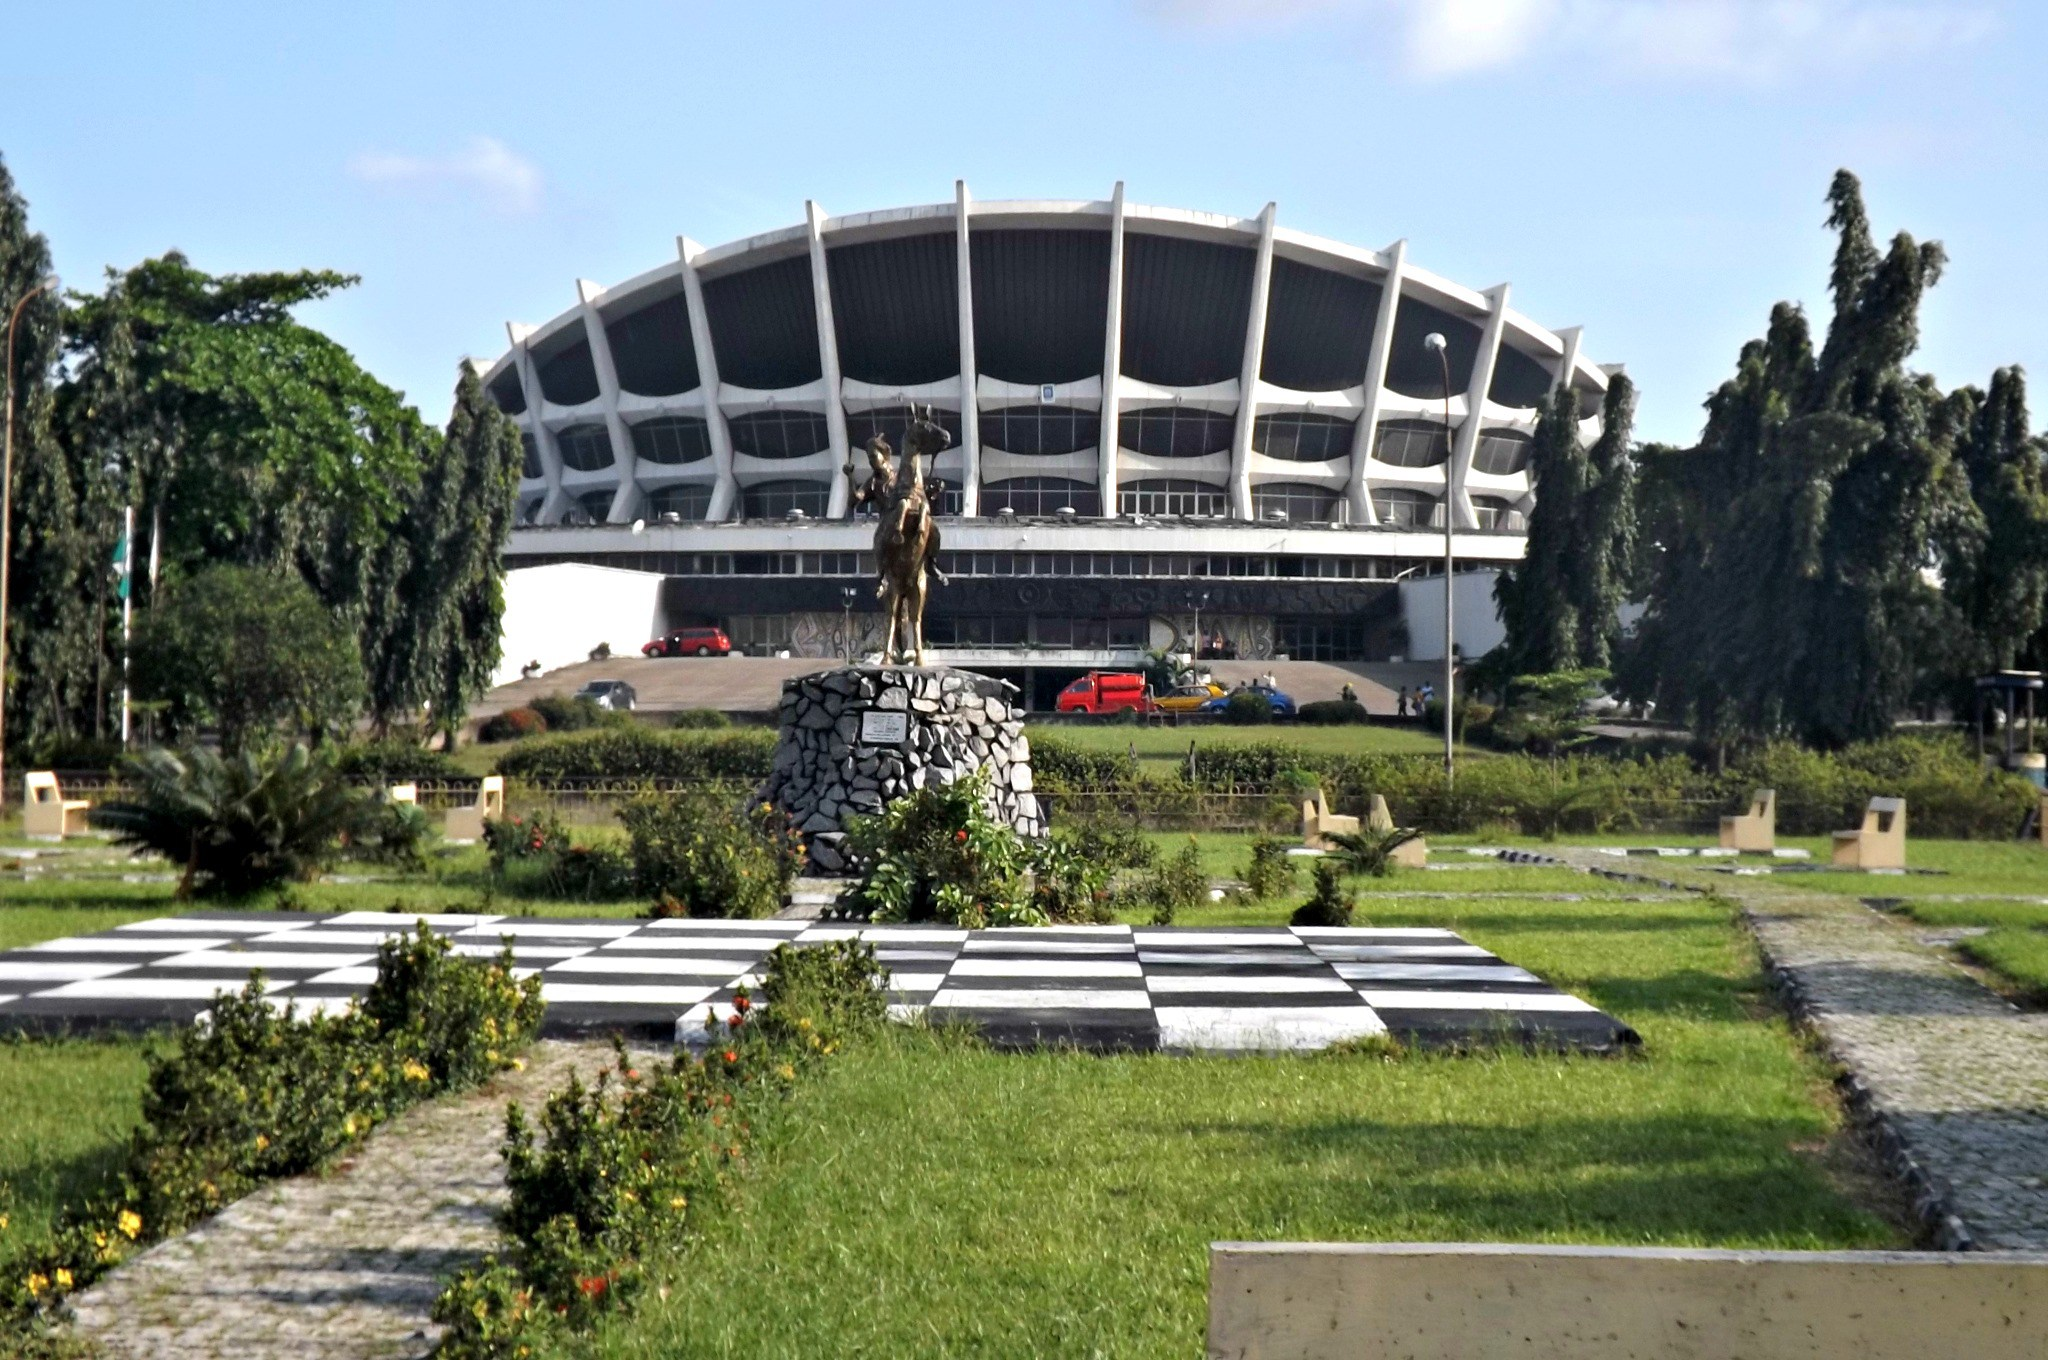 13 Historical Facts That Make Calabar the Greatest City in Nigeria, Organically!